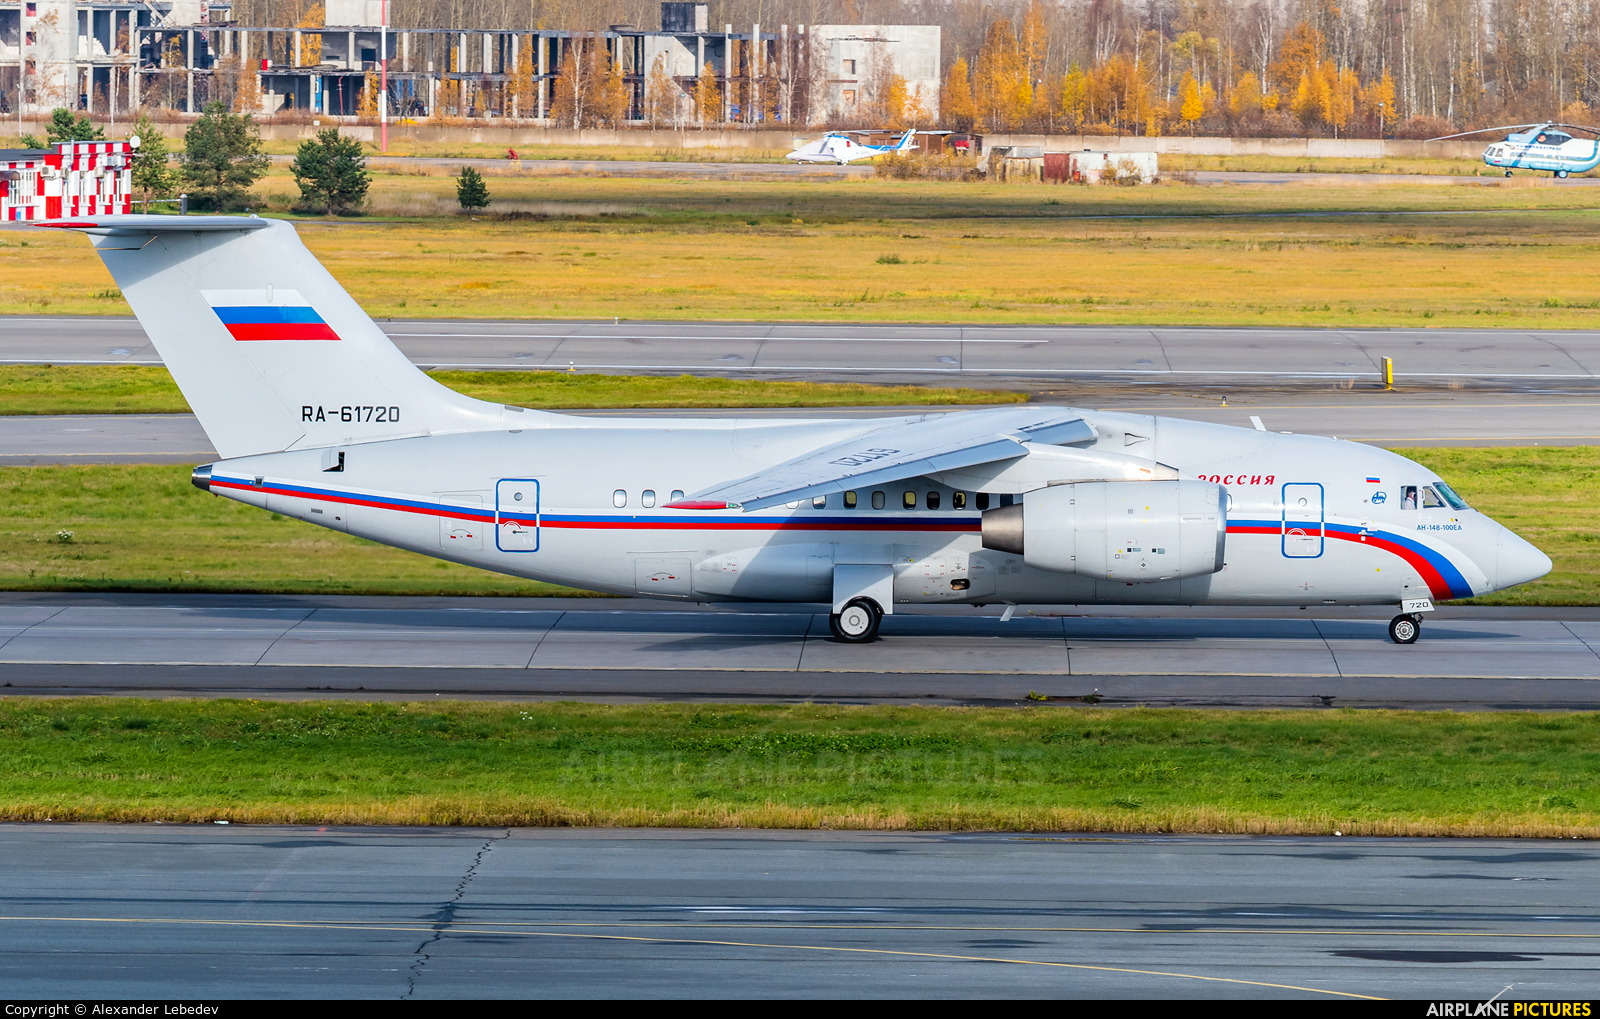 Rossiya Special Flight Detachment RA-61720 aircraft at St. Petersburg - Pulkovo